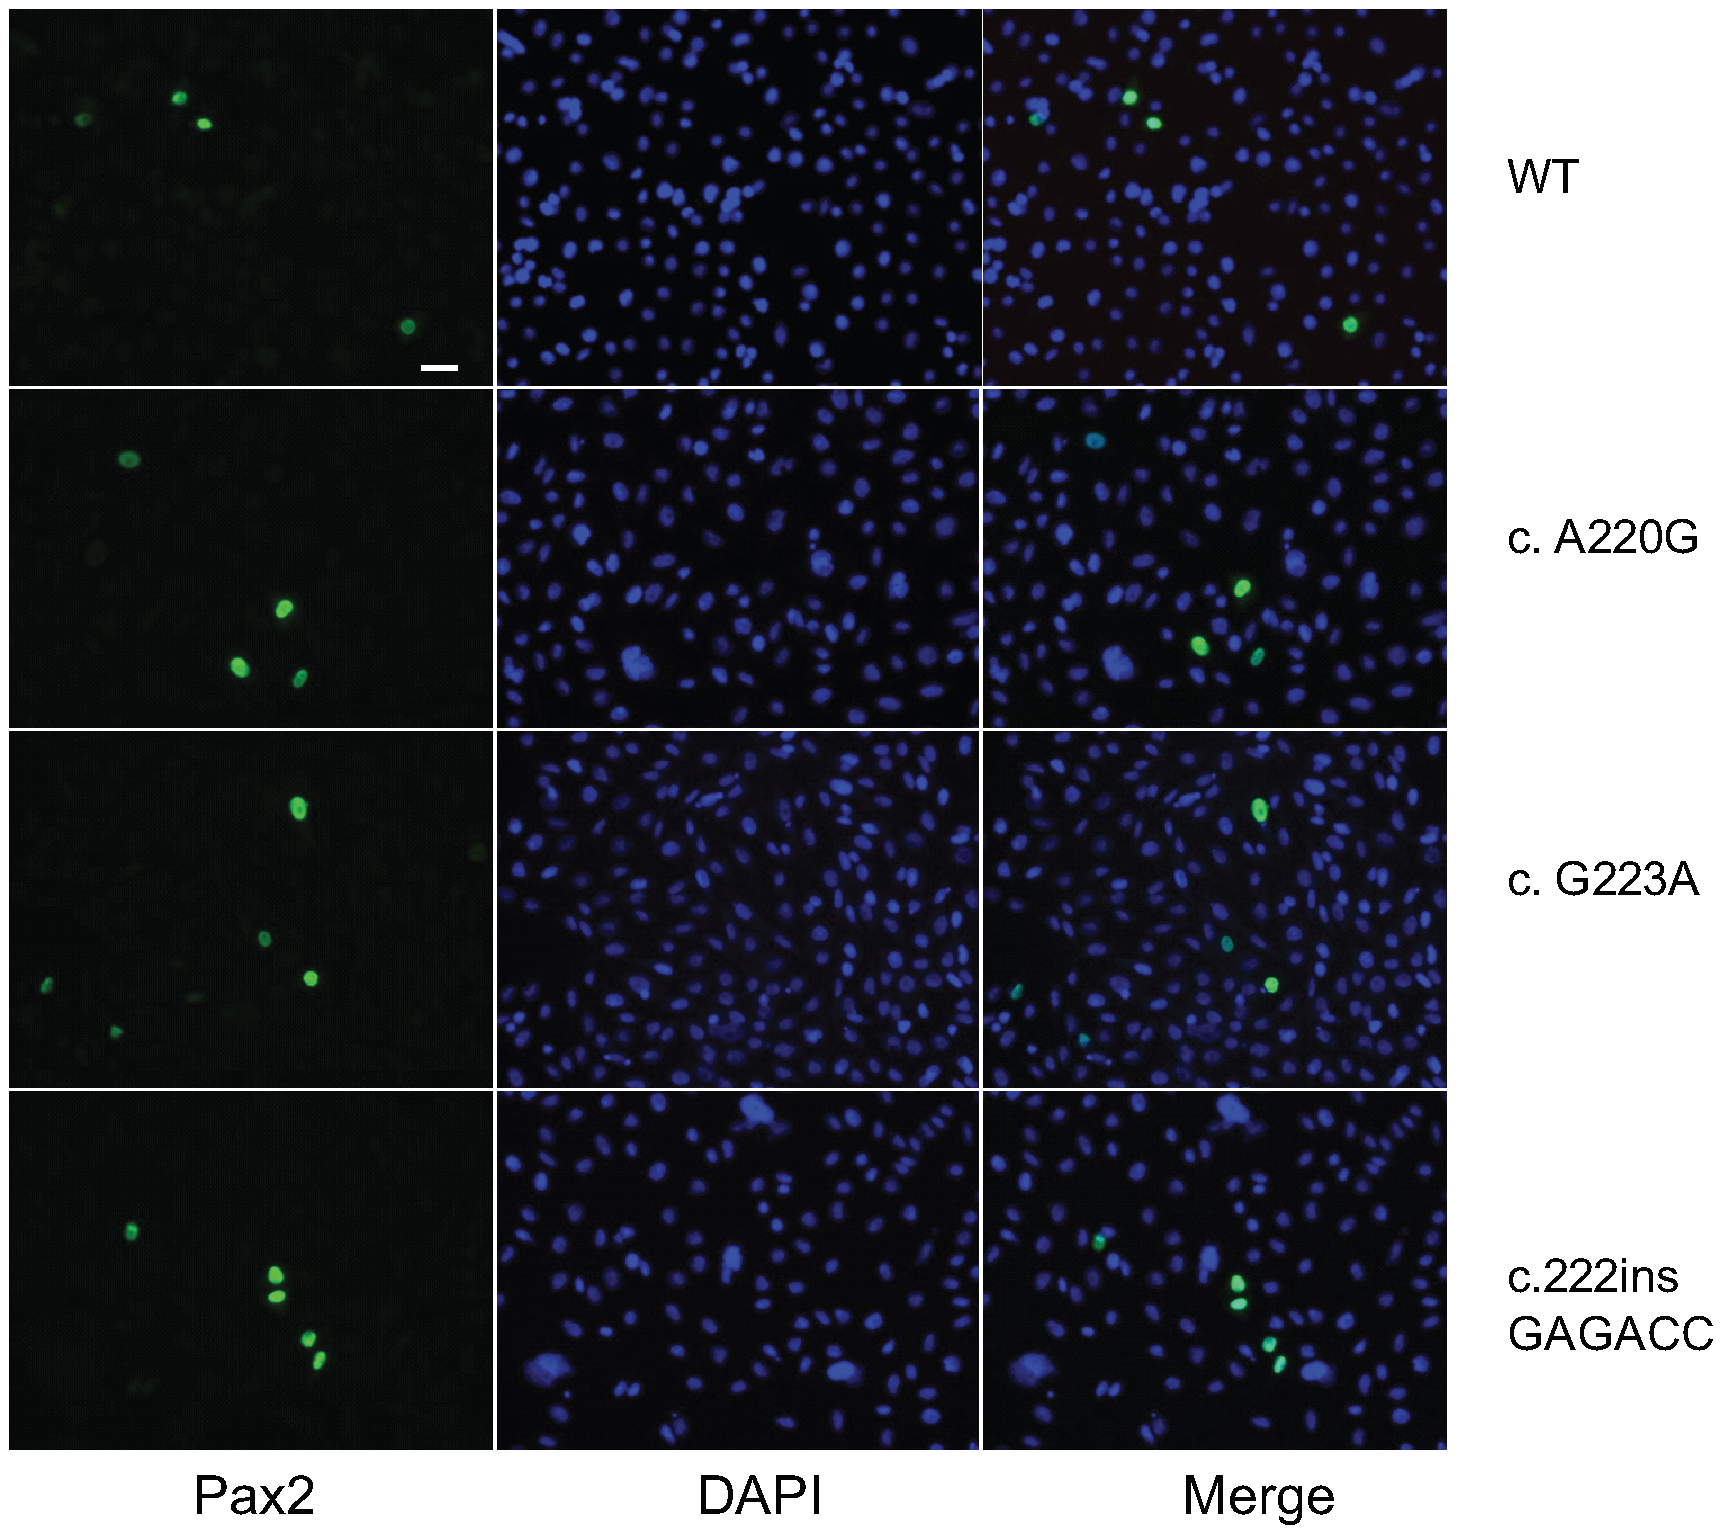 Pax2 immunofluoresence on COS-7 cells transfected with wild-type or mutant <i>Pax2</i> expression vectors.